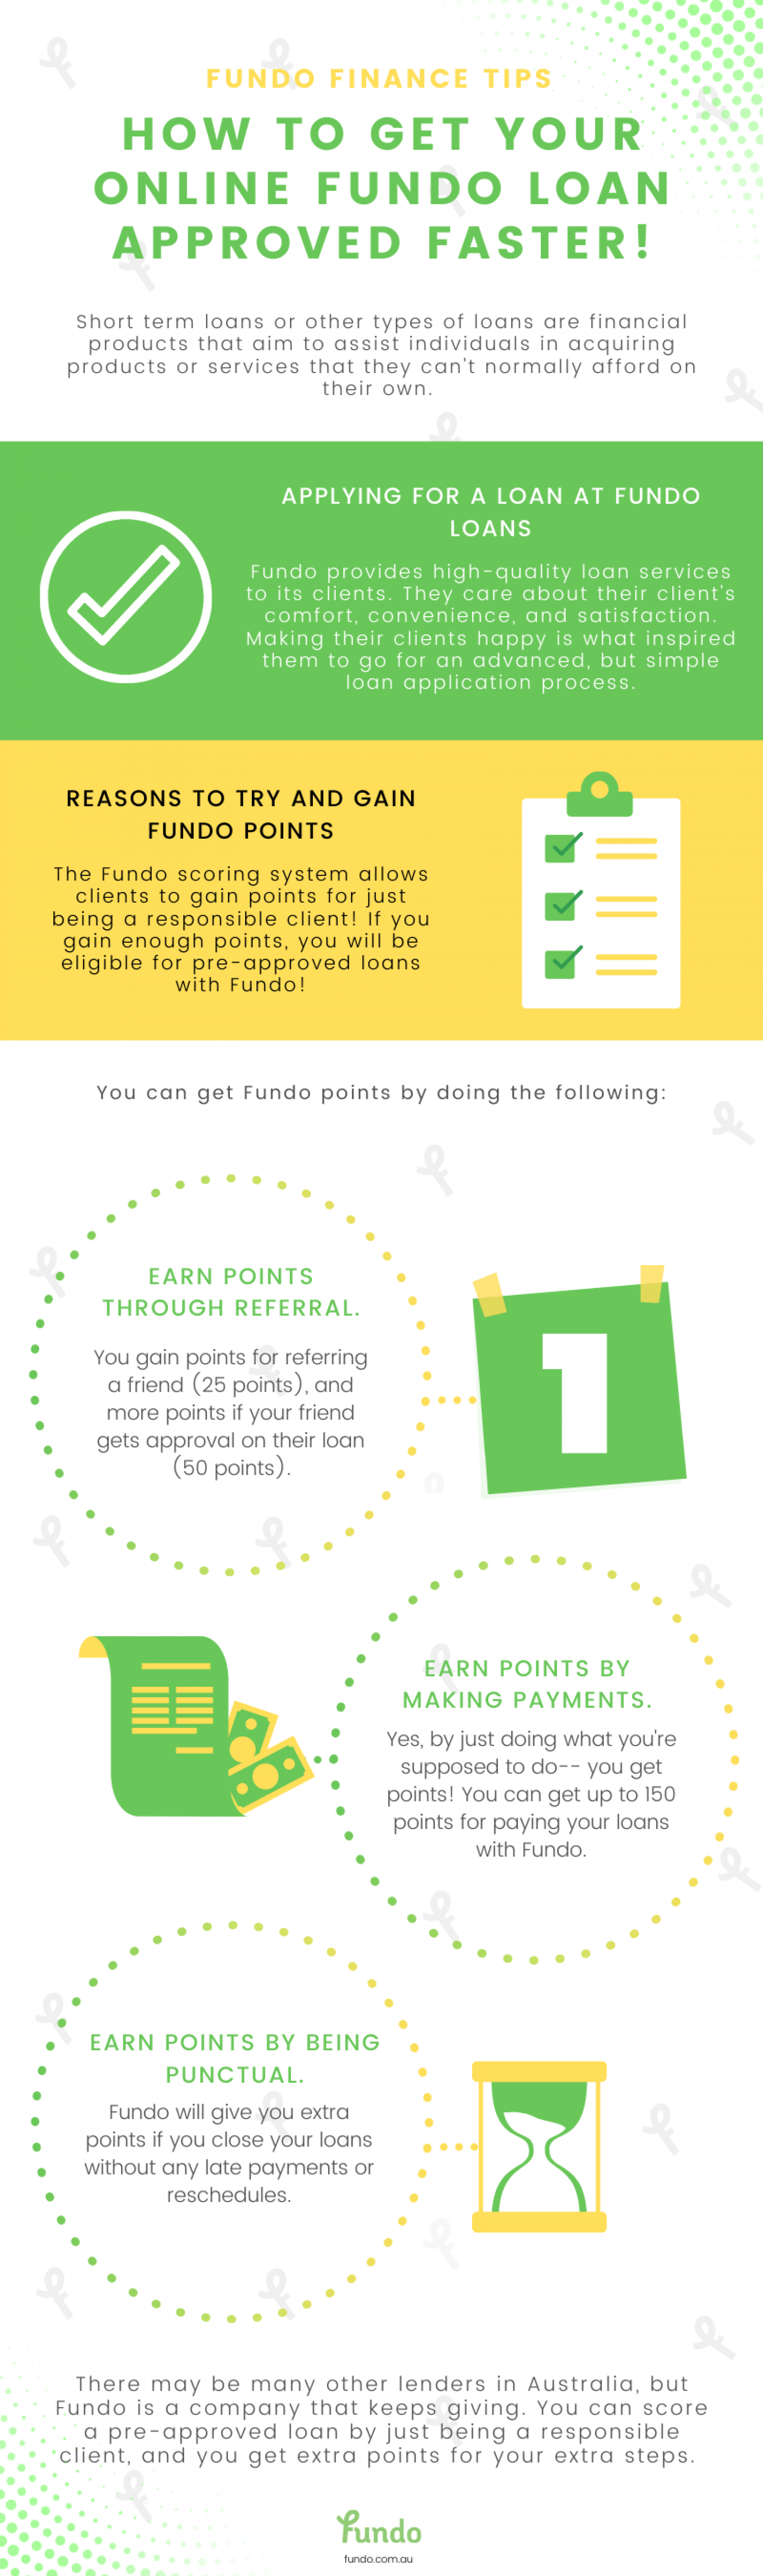 How to Get Your Online Fundo Loan Approved Faster! Infographic